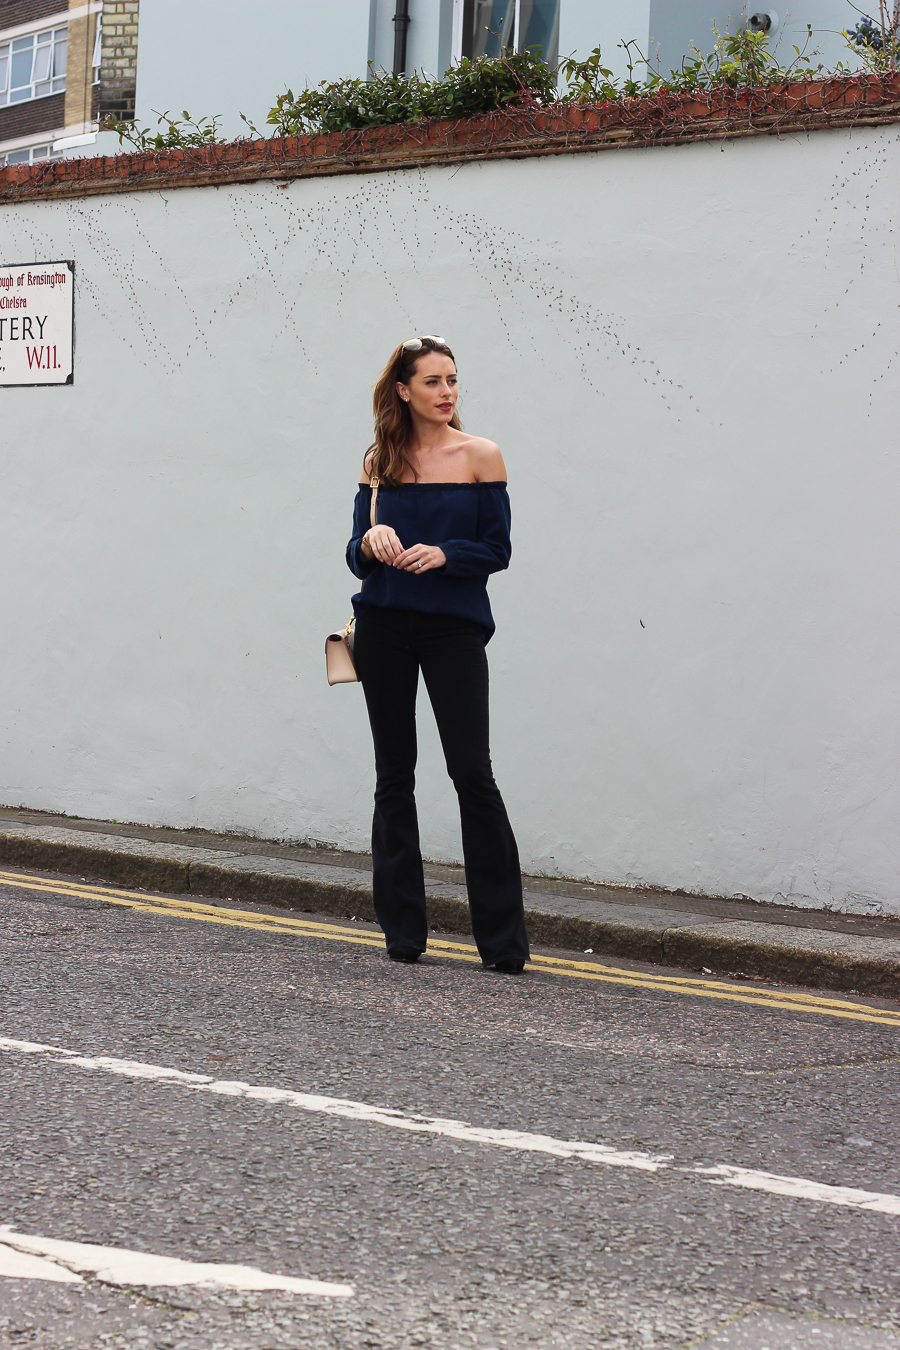 Clutch and carry on - uk fashion blogger - uk travel blogger - sabrina chakici - mango off shoulder top, london street style, sophie hulme oat-19